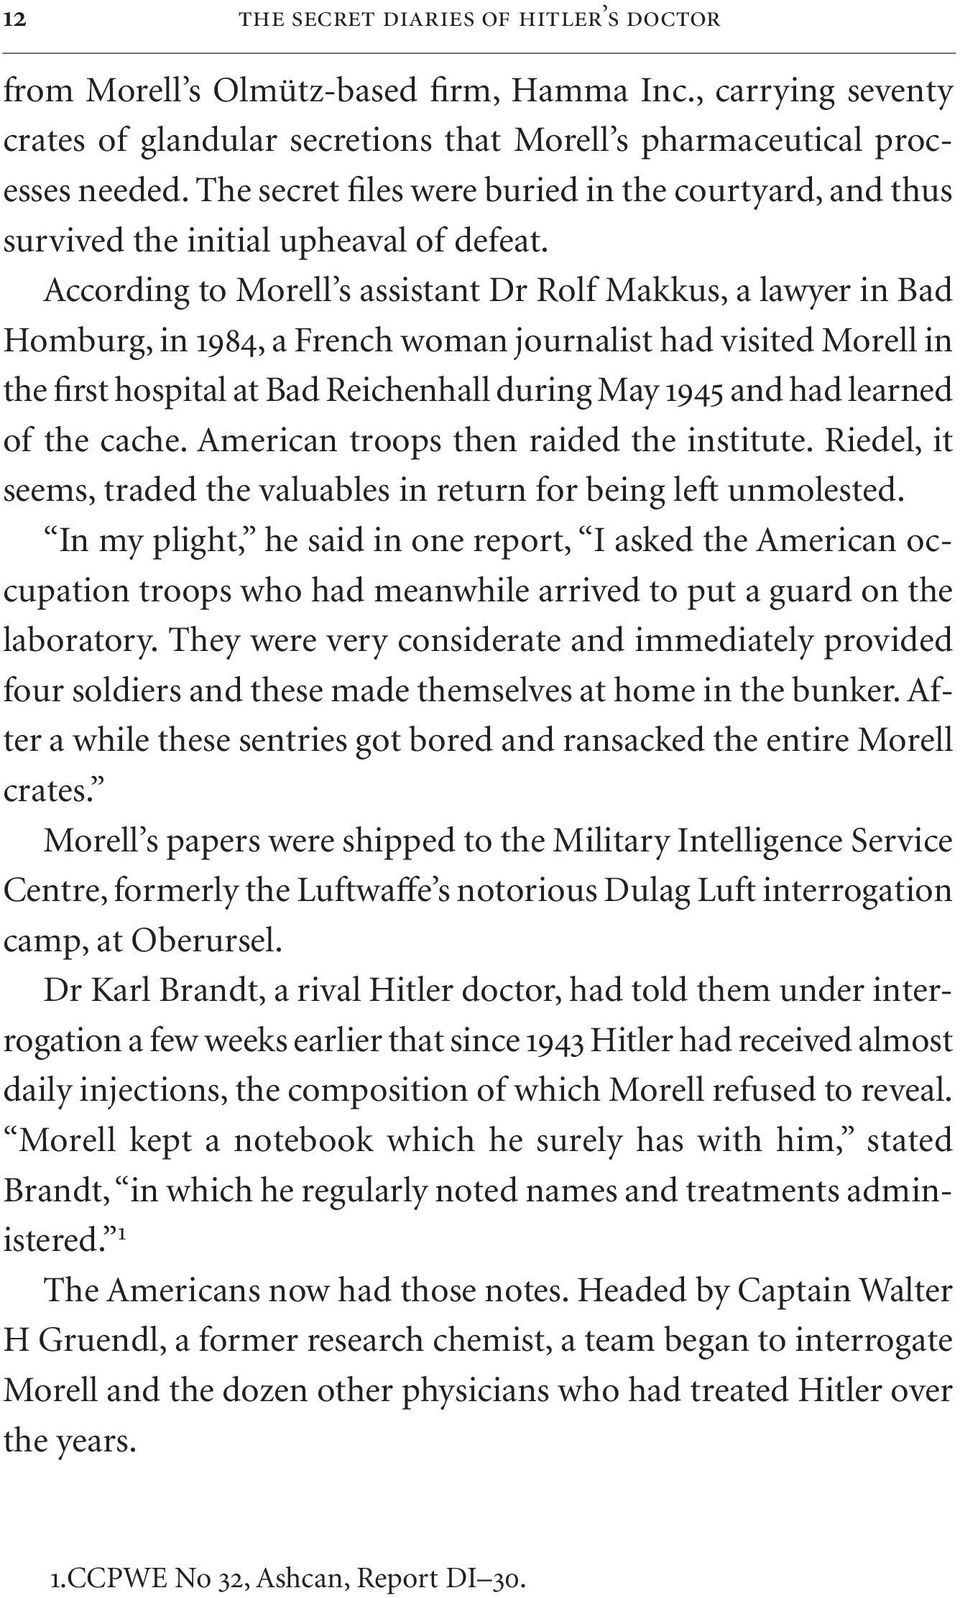 According to Morell s assistant Dr Rolf Makkus, a lawyer in Bad Homburg, in 1984, a French woman journalist had visited Morell in the first hospital at Bad Reichenhall during May 1945 and had learned